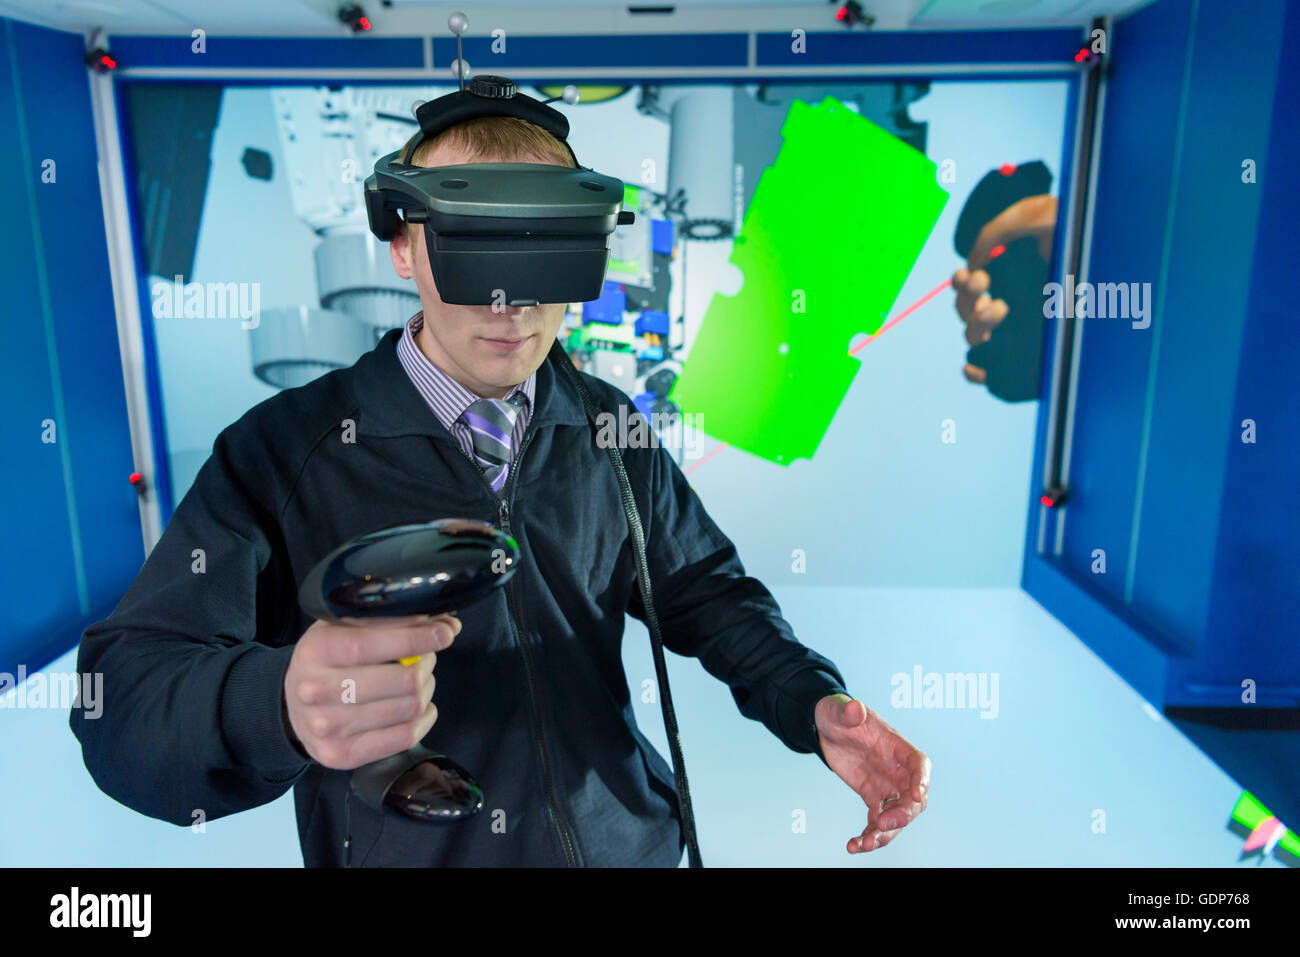 Engineer wearing VR headset in virtual reality suite - Stock Image